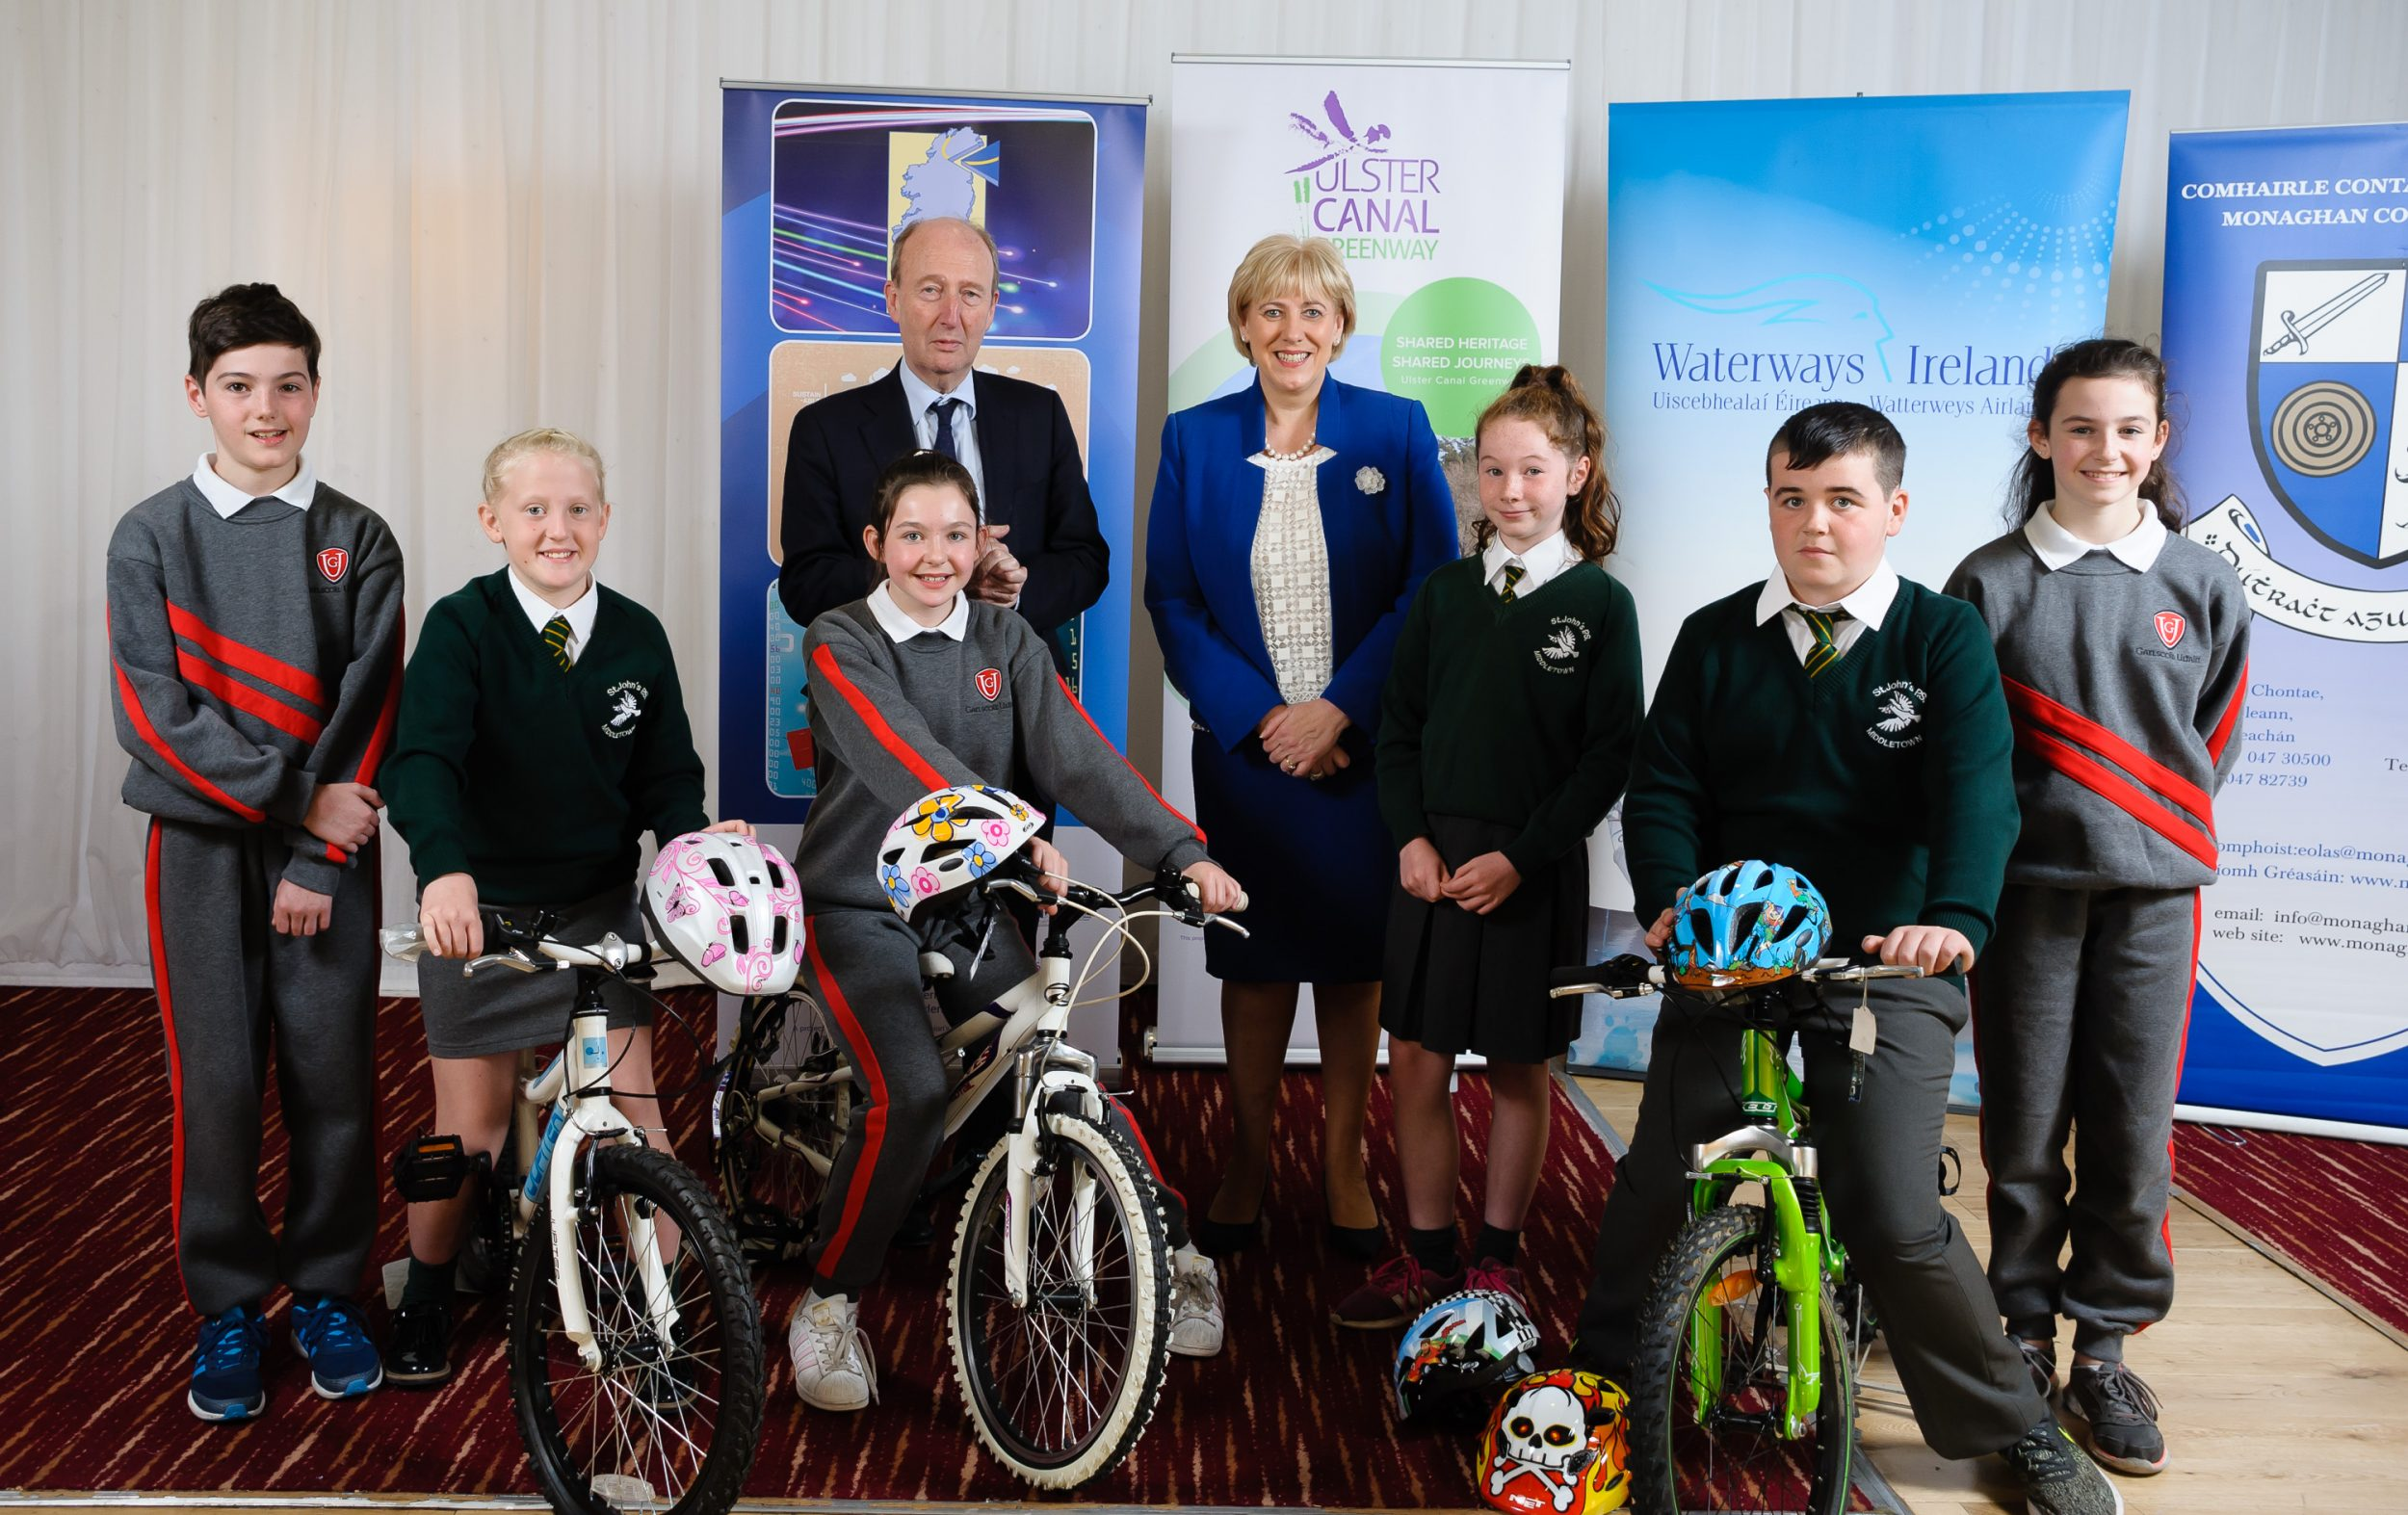 Launch of Ulster Canal Greenway